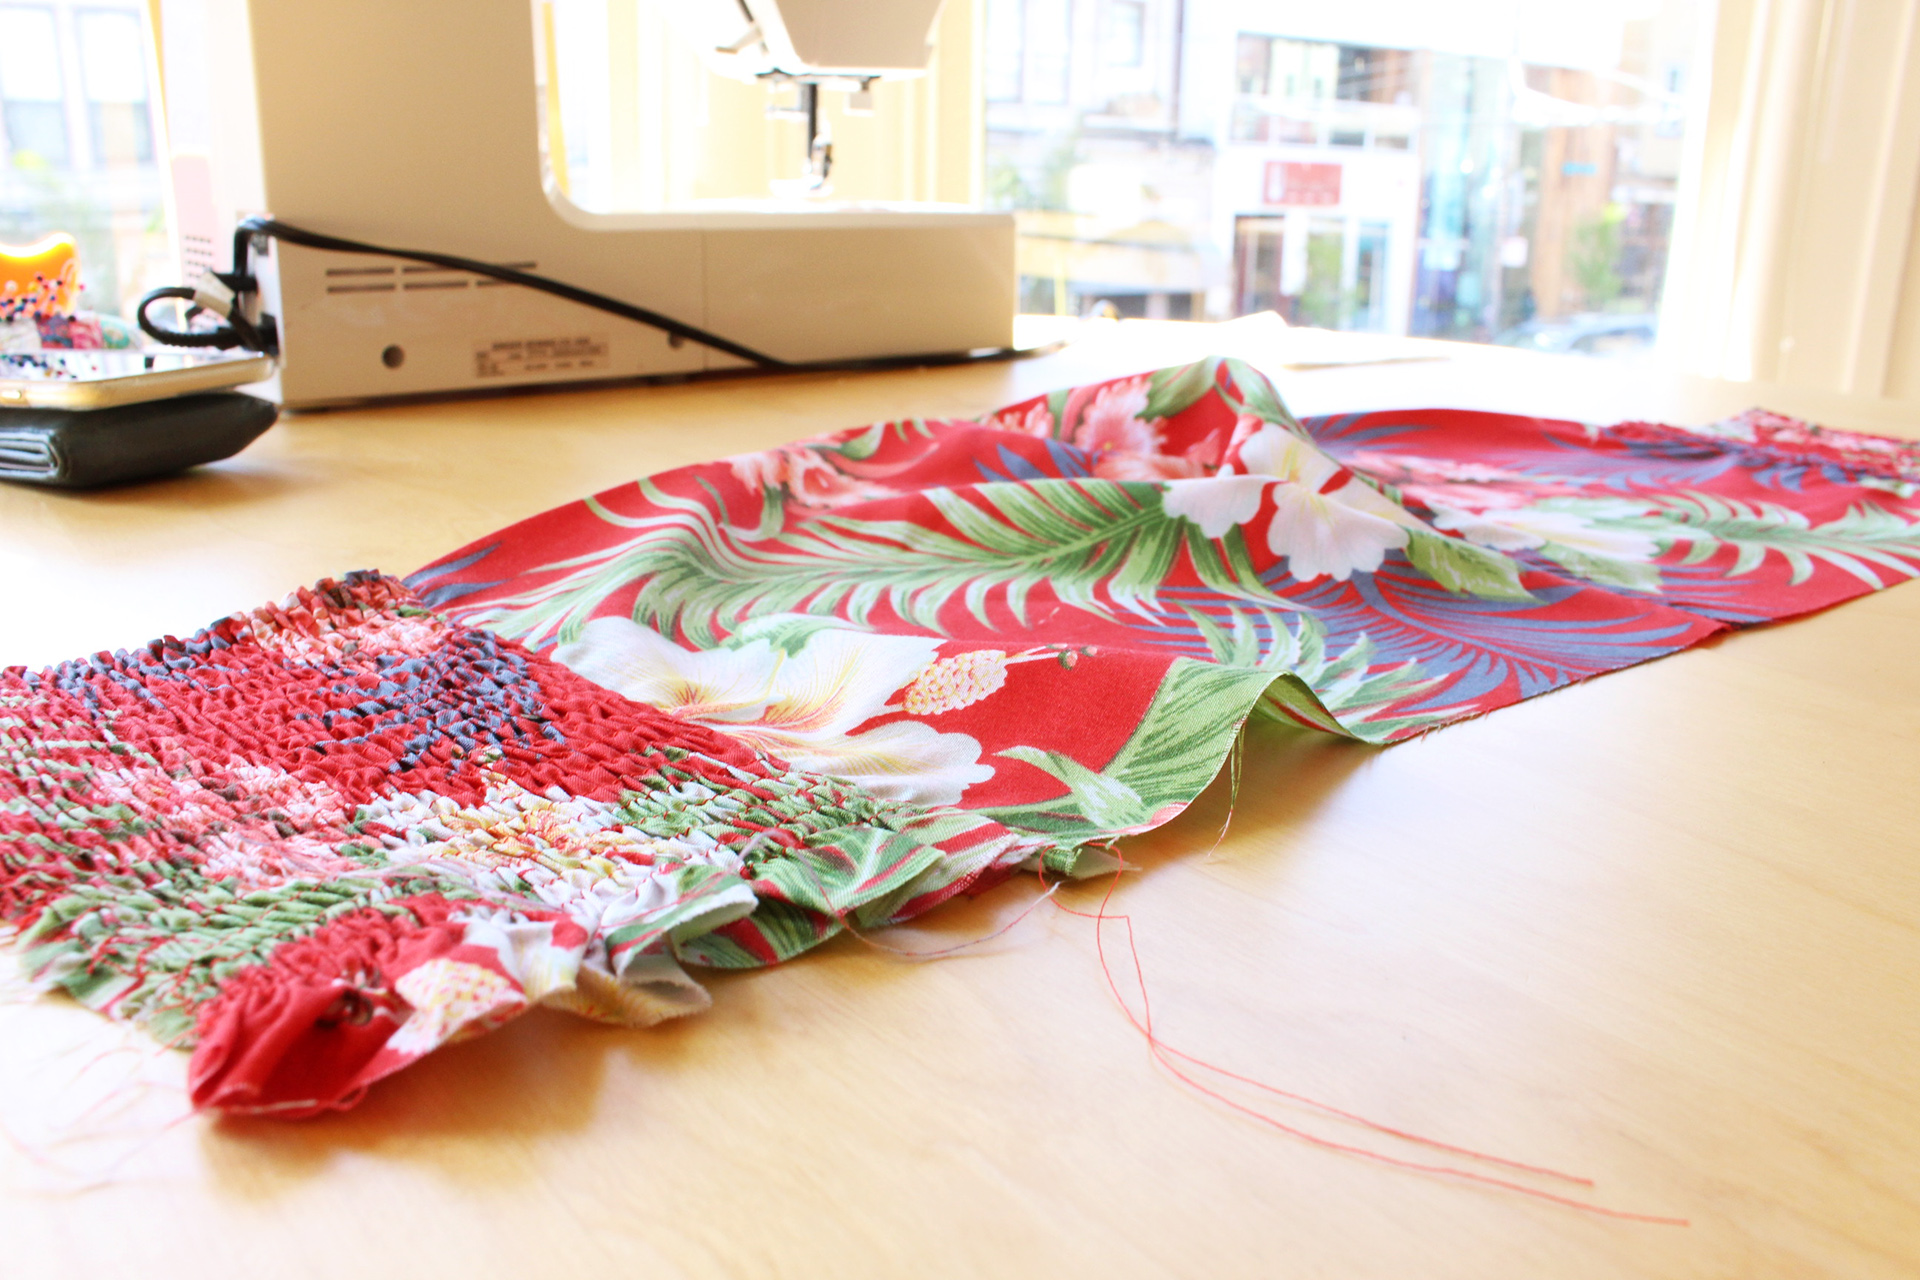 Gertie Tiki Dress, Gertie's New Book for Better Sewing, in progress bodice | @vintageontap